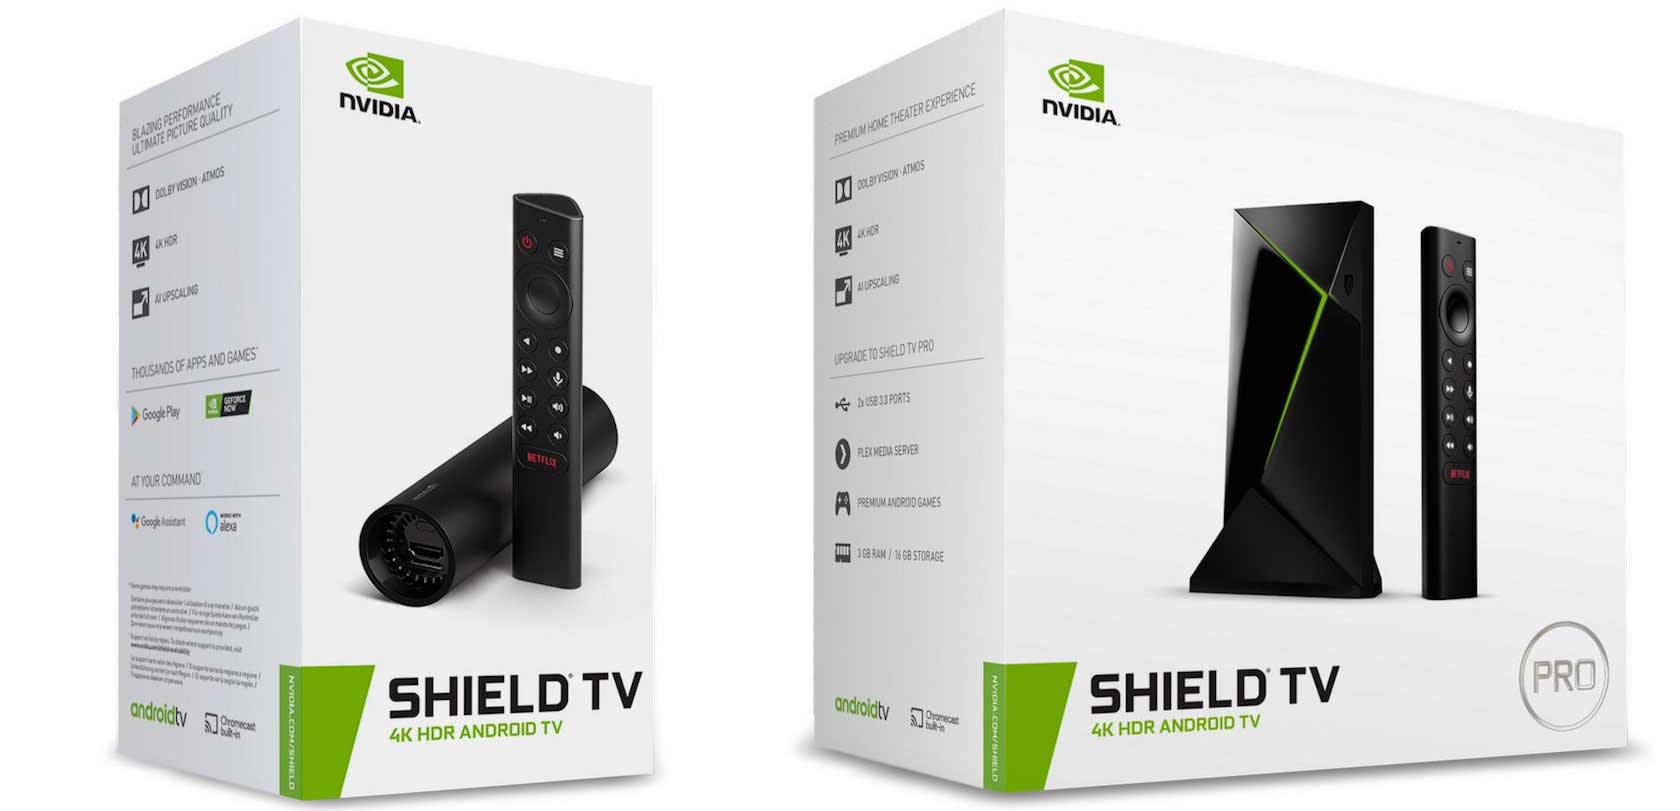 nvidia shield and shield pro in boxes